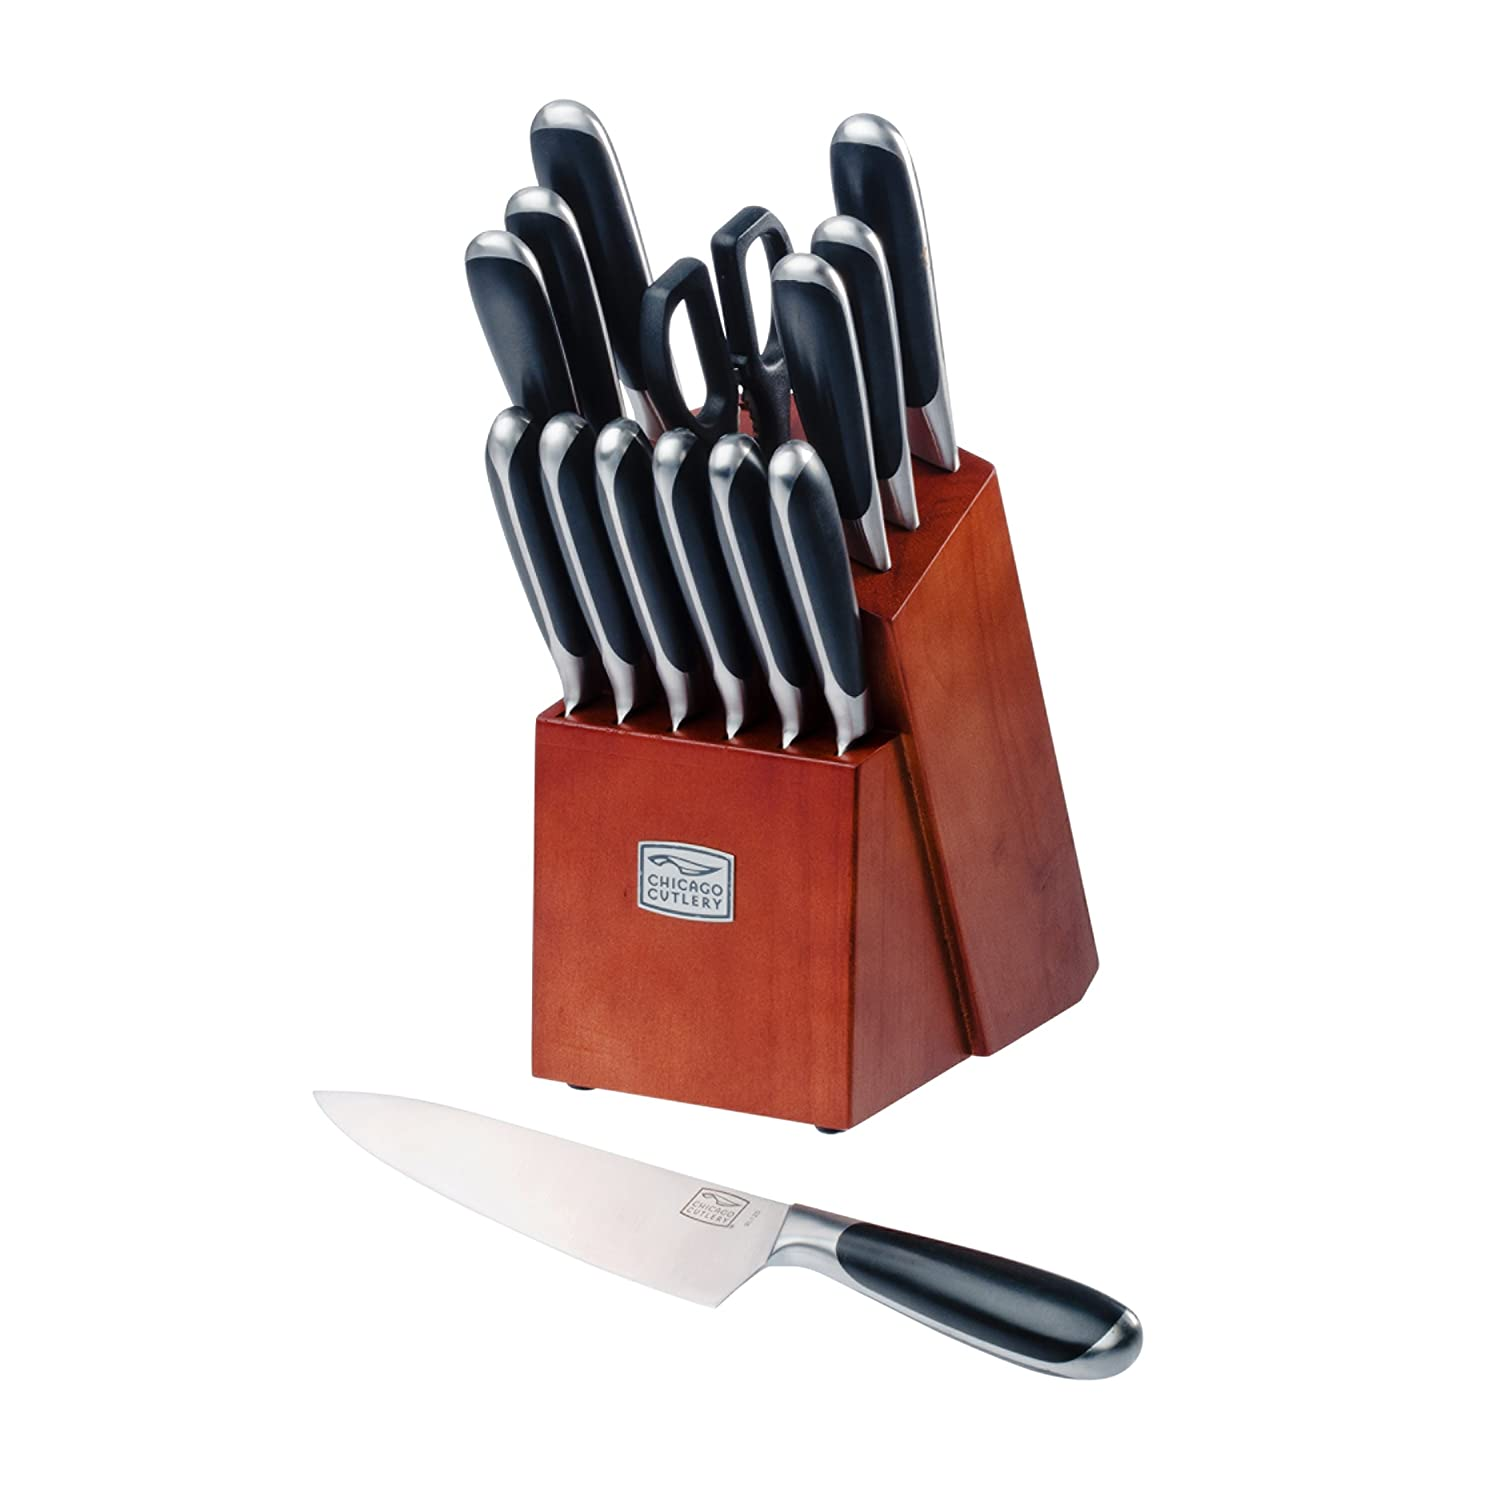 Chicago Cutlery Belden High-Carbon Stainless Steel Knife Block Set (15-Piece)